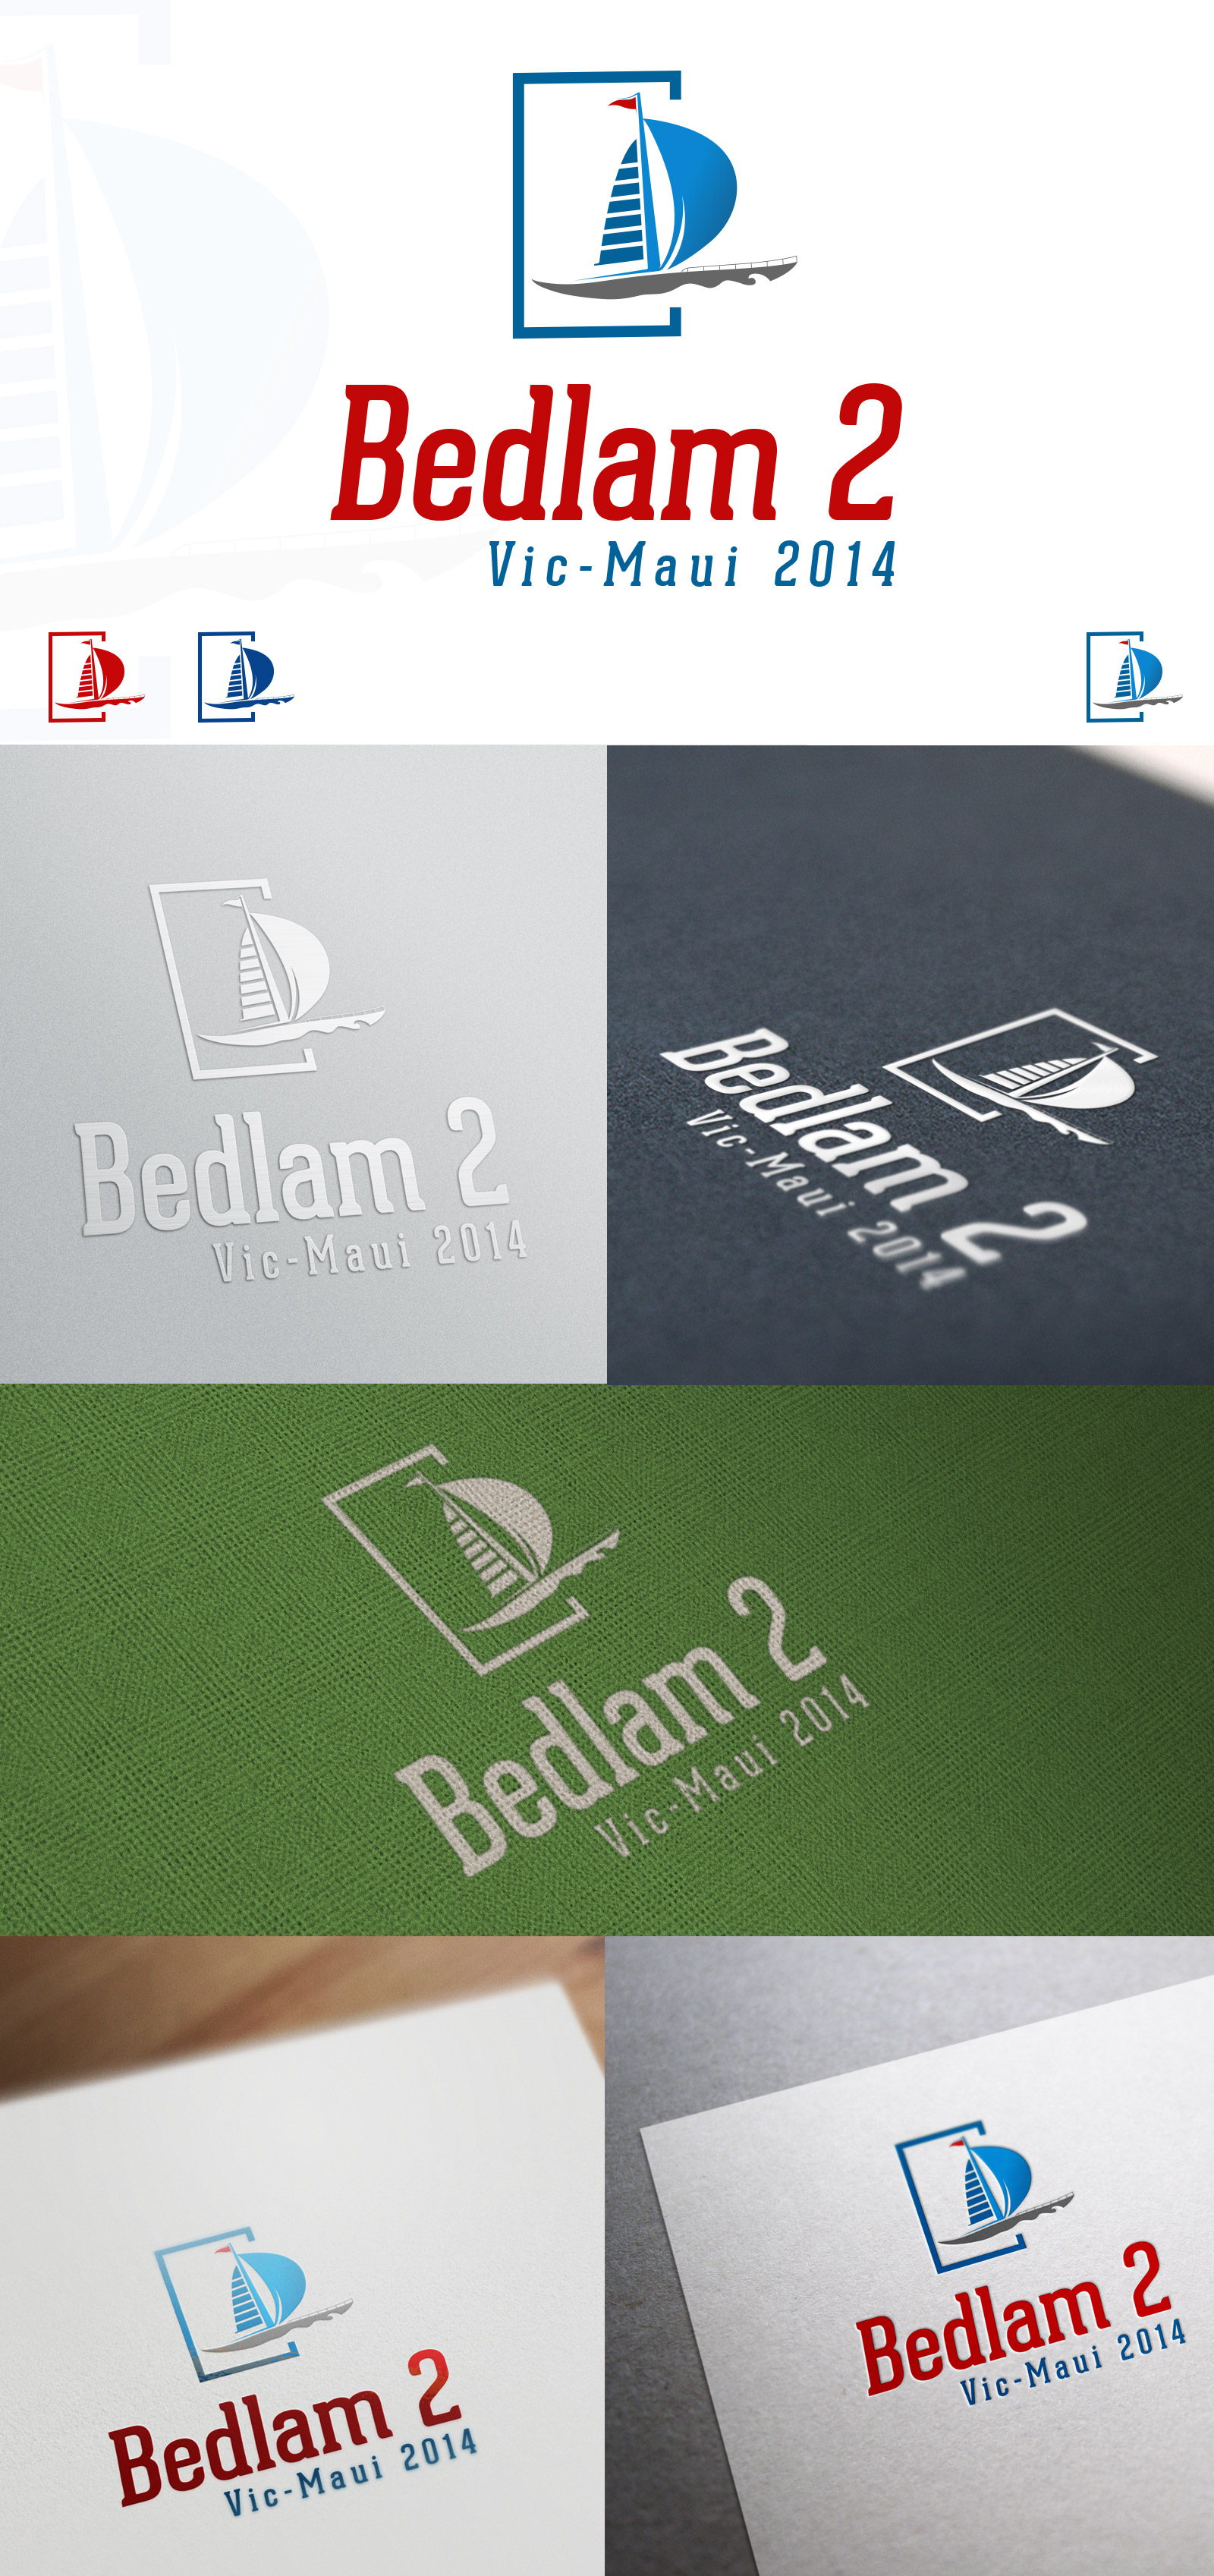 Logo Design by olii - Entry No. 41 in the Logo Design Contest Artistic Logo Design for Bedlam 2  Vic-Maui 2014.